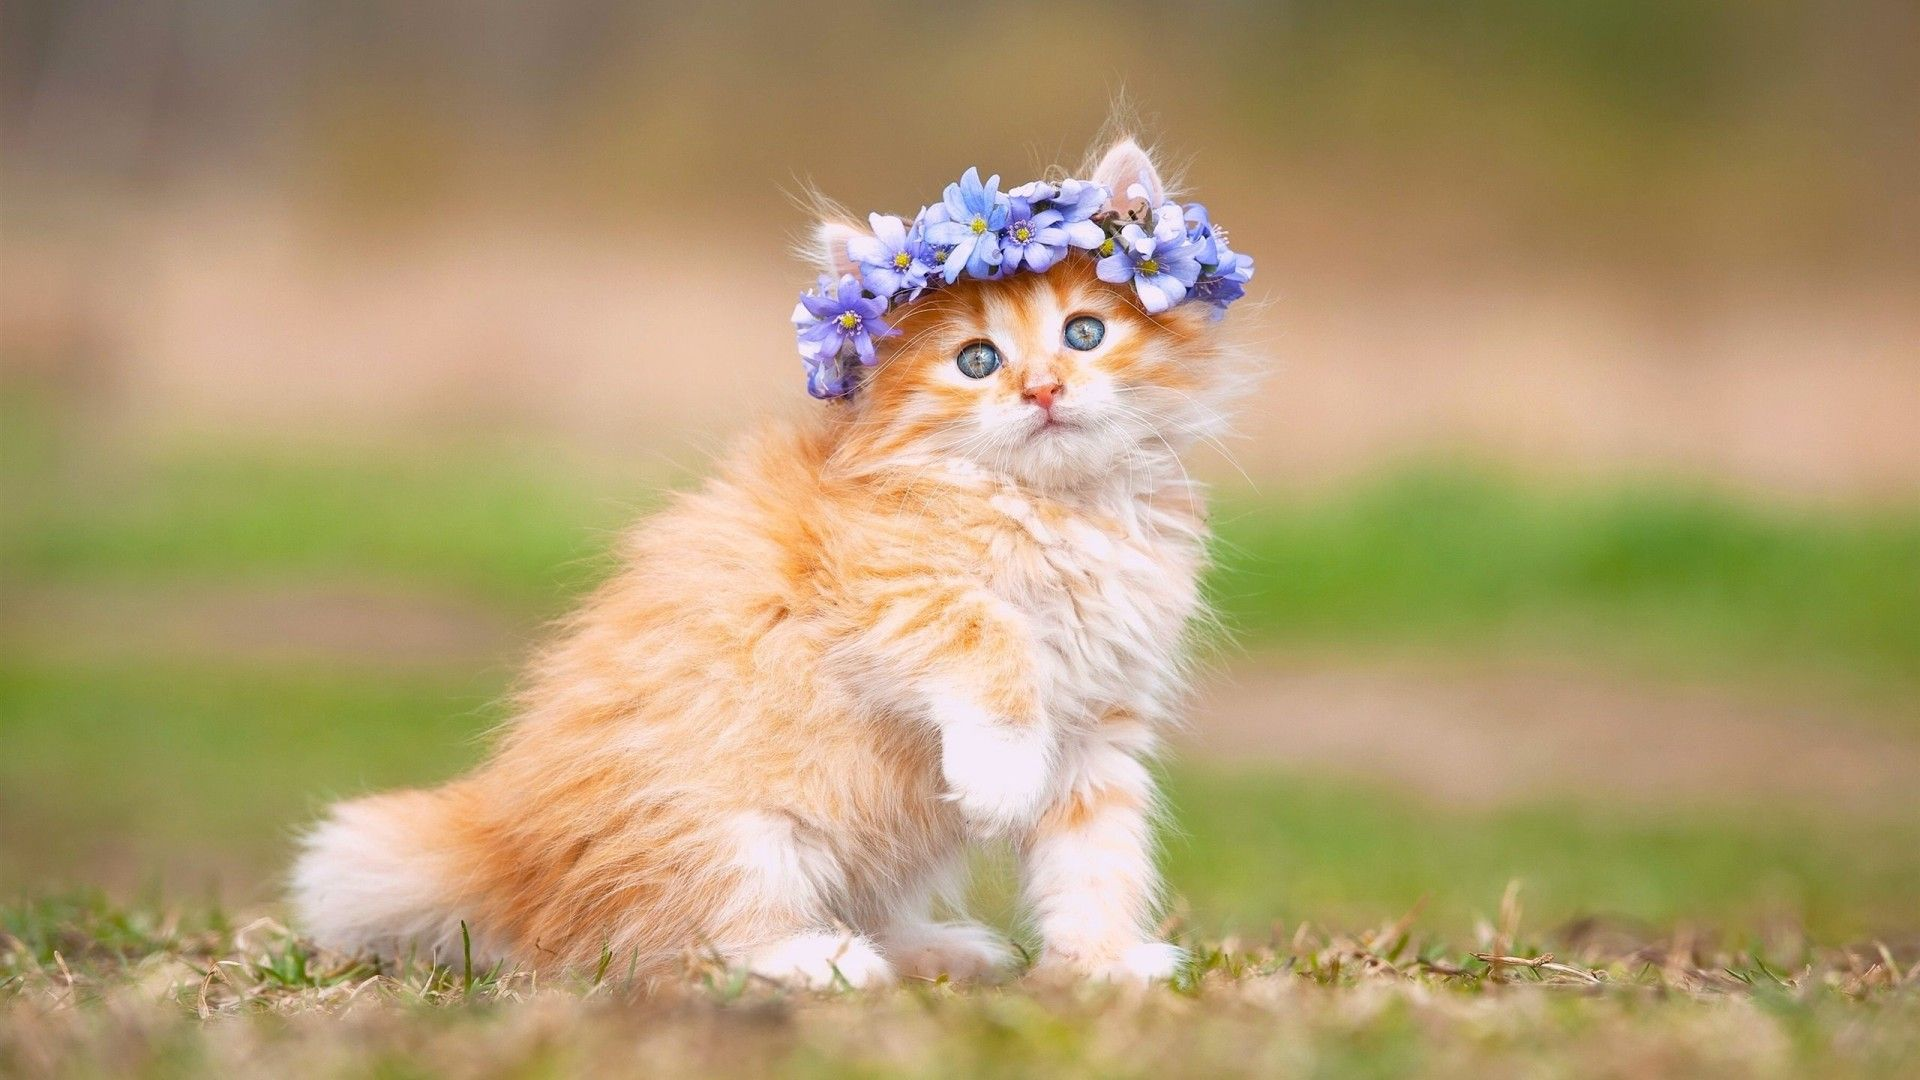 Fluffy Kitten Wallpapers High Quality Free Download Cats Kitten